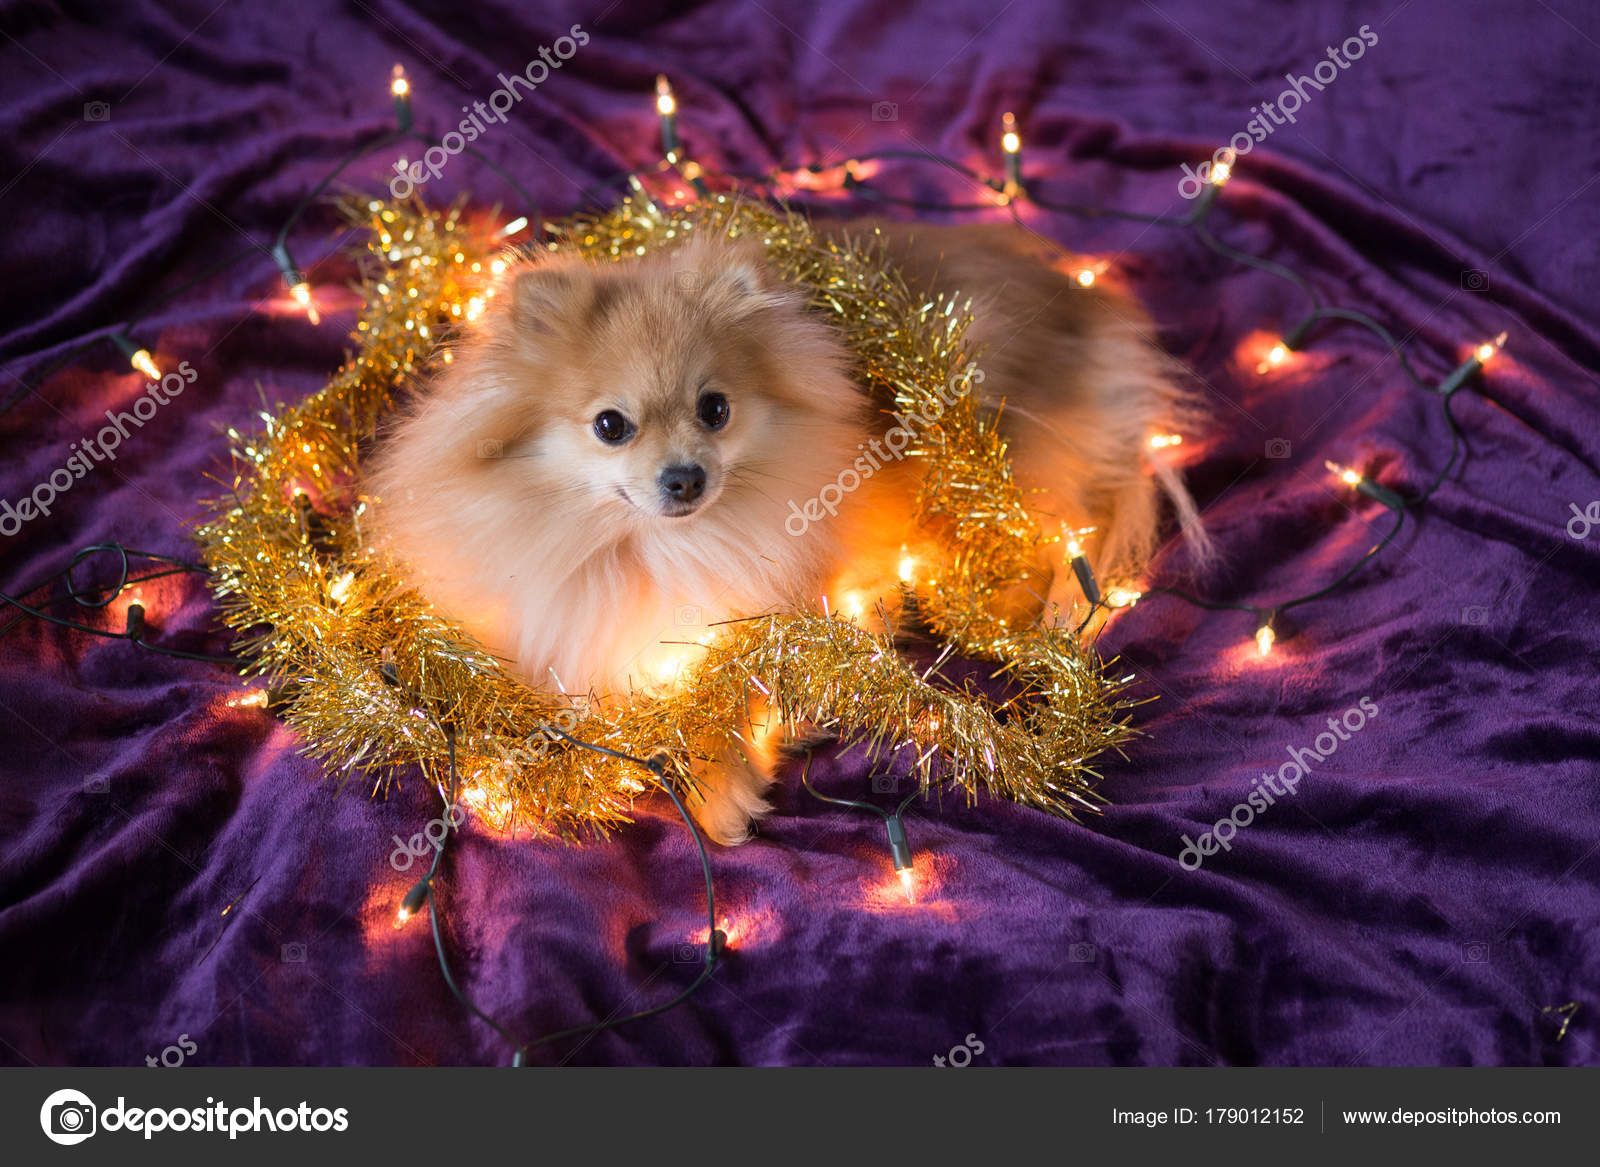 Cute Little German Spitz Dog Decorated Christmas Lights Purple Background Stock Photo